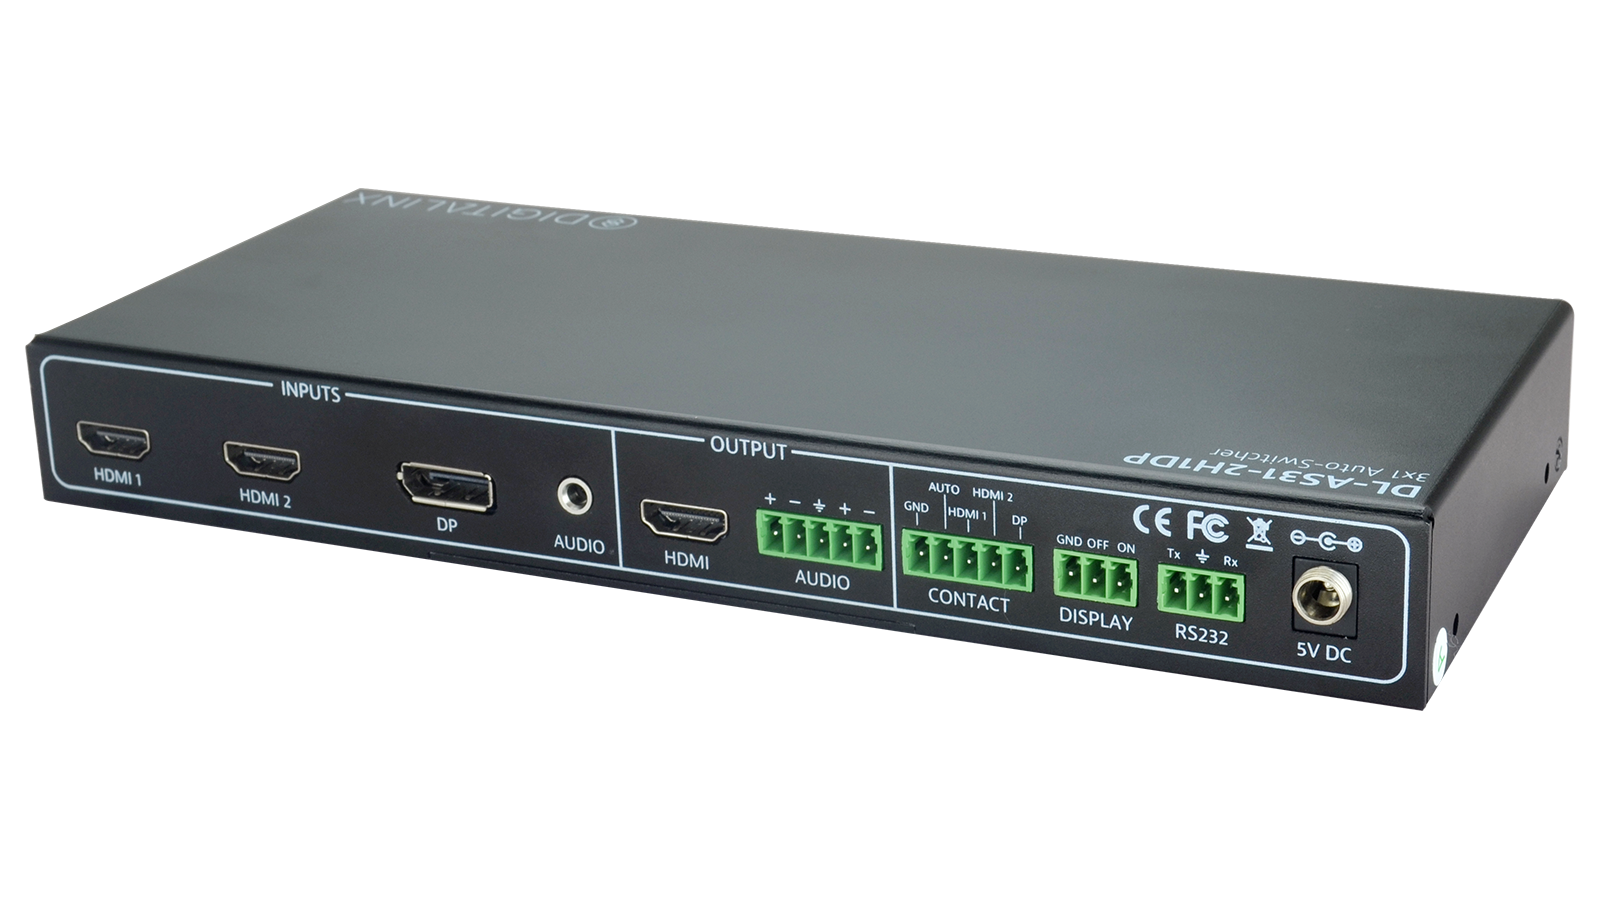 Dl As31 2h1dp 3x1 Auto Switcher With 2 Hdmi And 1 Displayport Input Port Patch Panel Also Led Light Simple Circuit Diagram